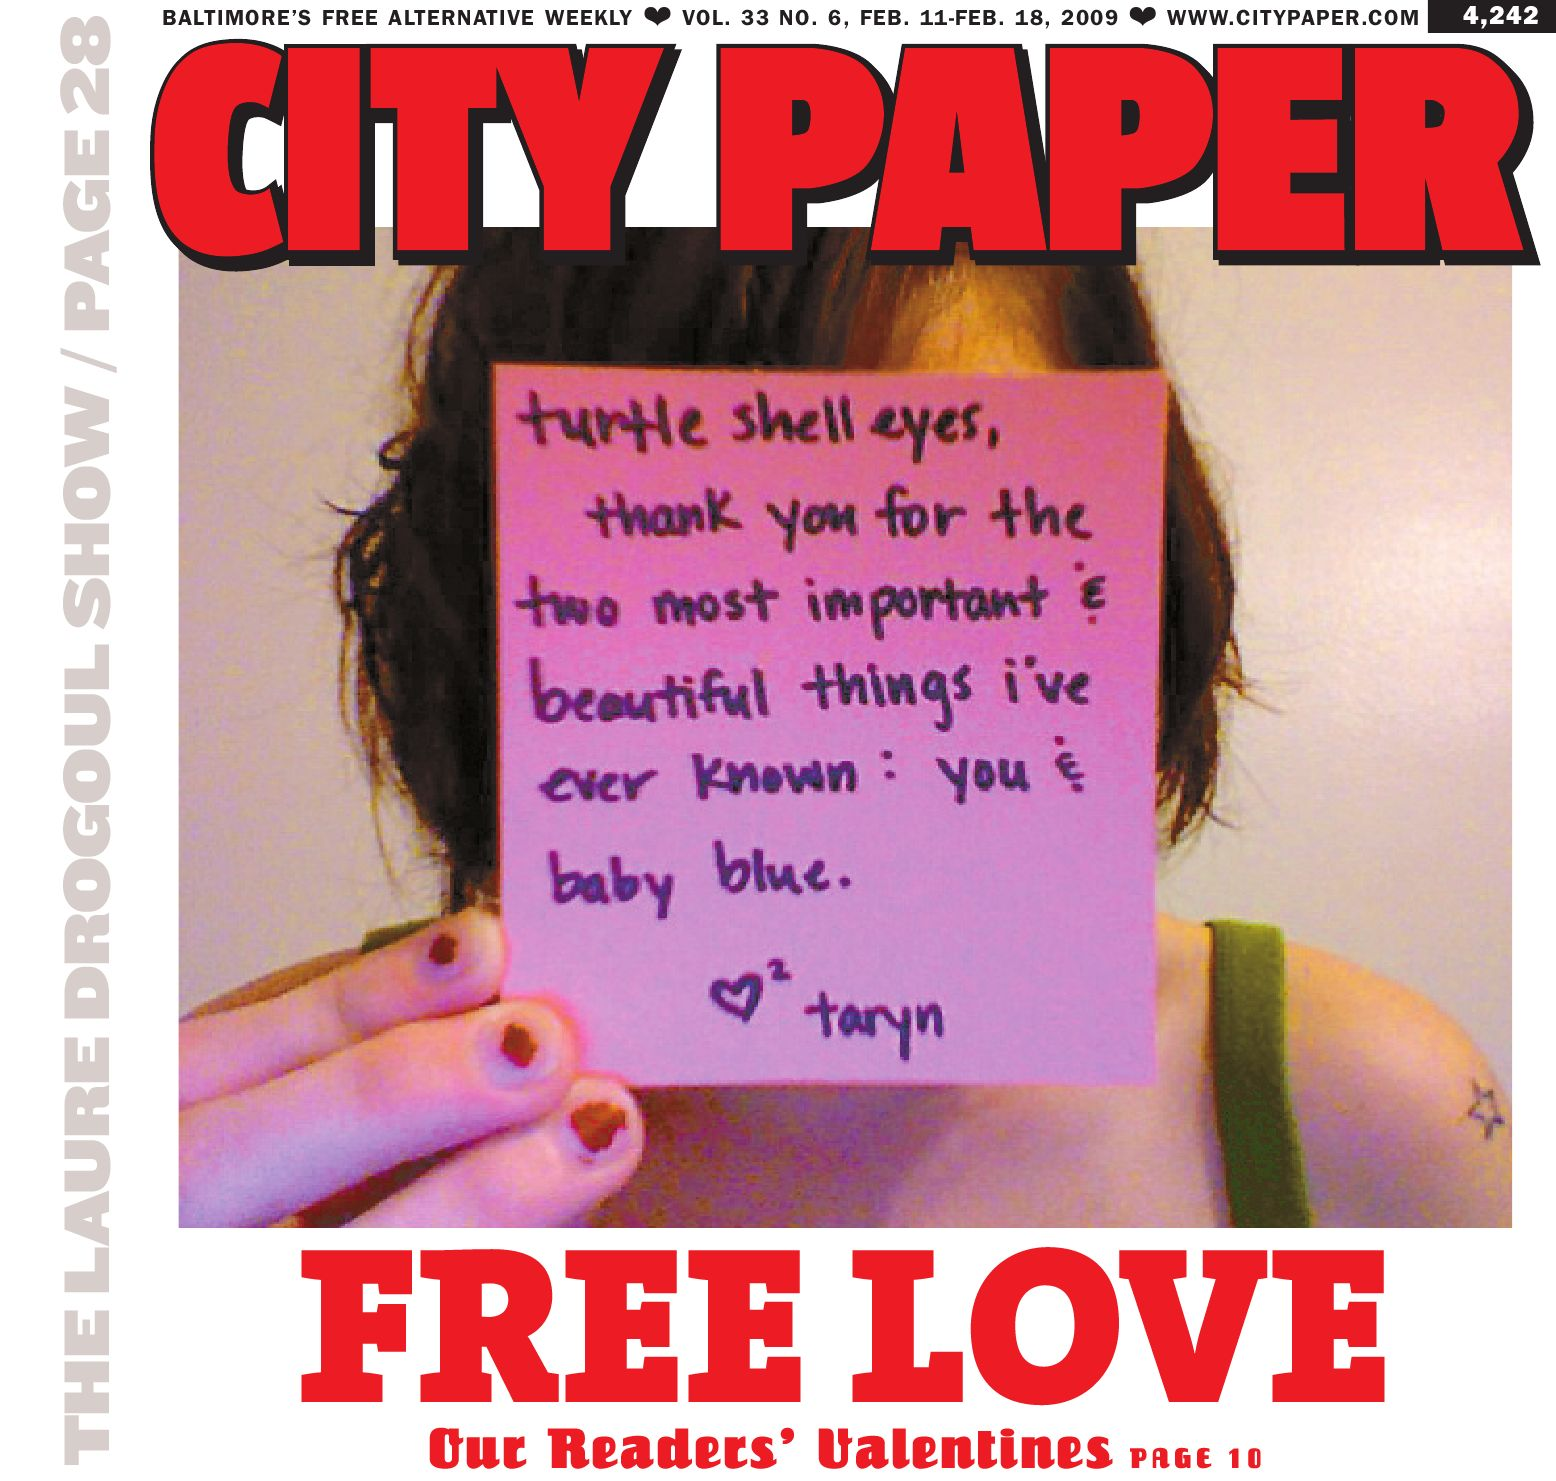 Baltimore city paper vol 33 no 6 by baltimore city paper issuu 6 by baltimore city paper issuu xflitez Choice Image